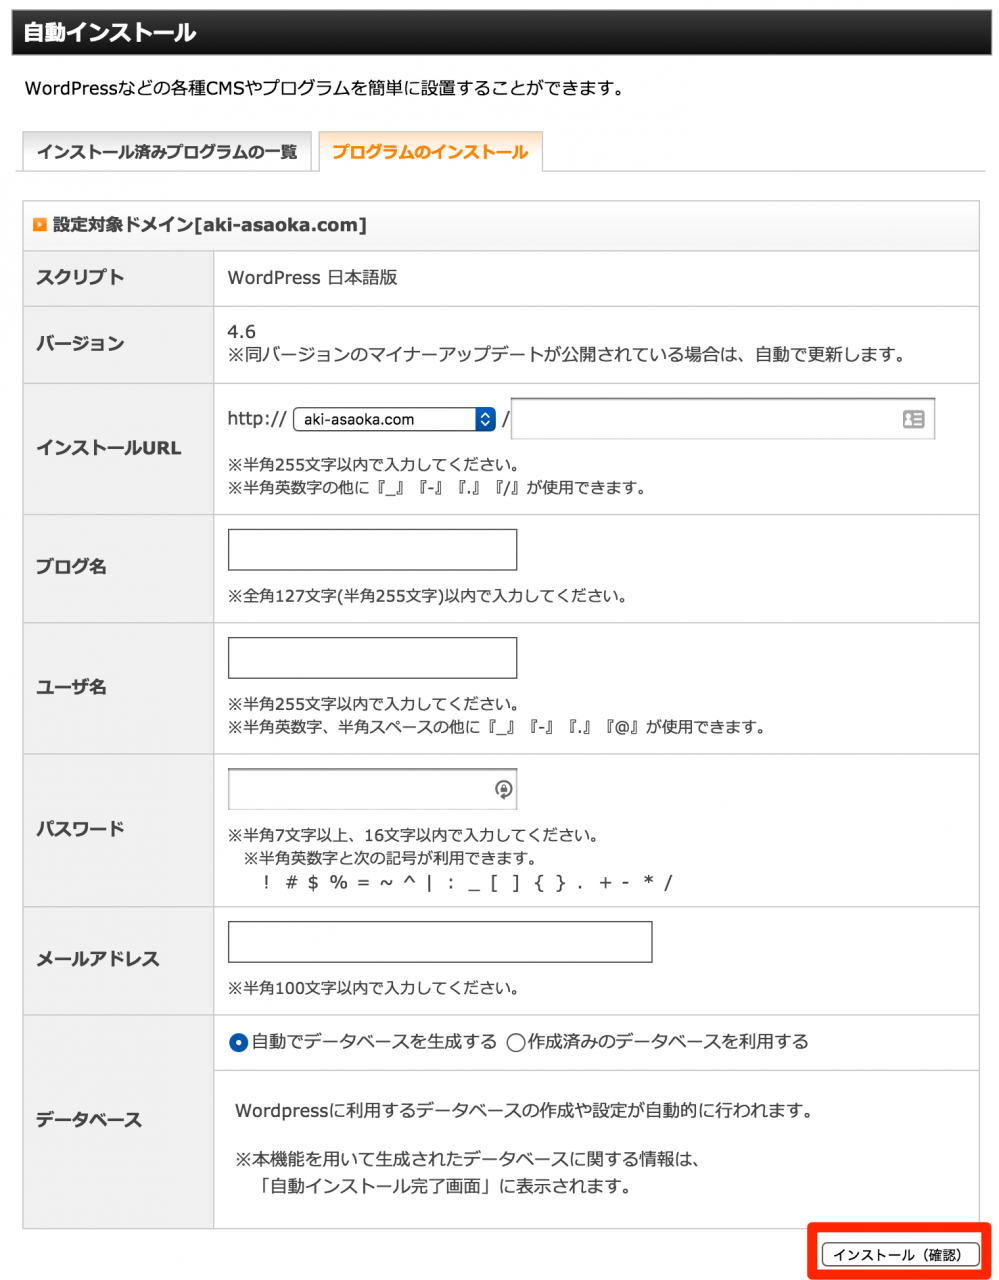 screencapture-secure-xserver-ne-jp-xserver-sv1302-1477180360753